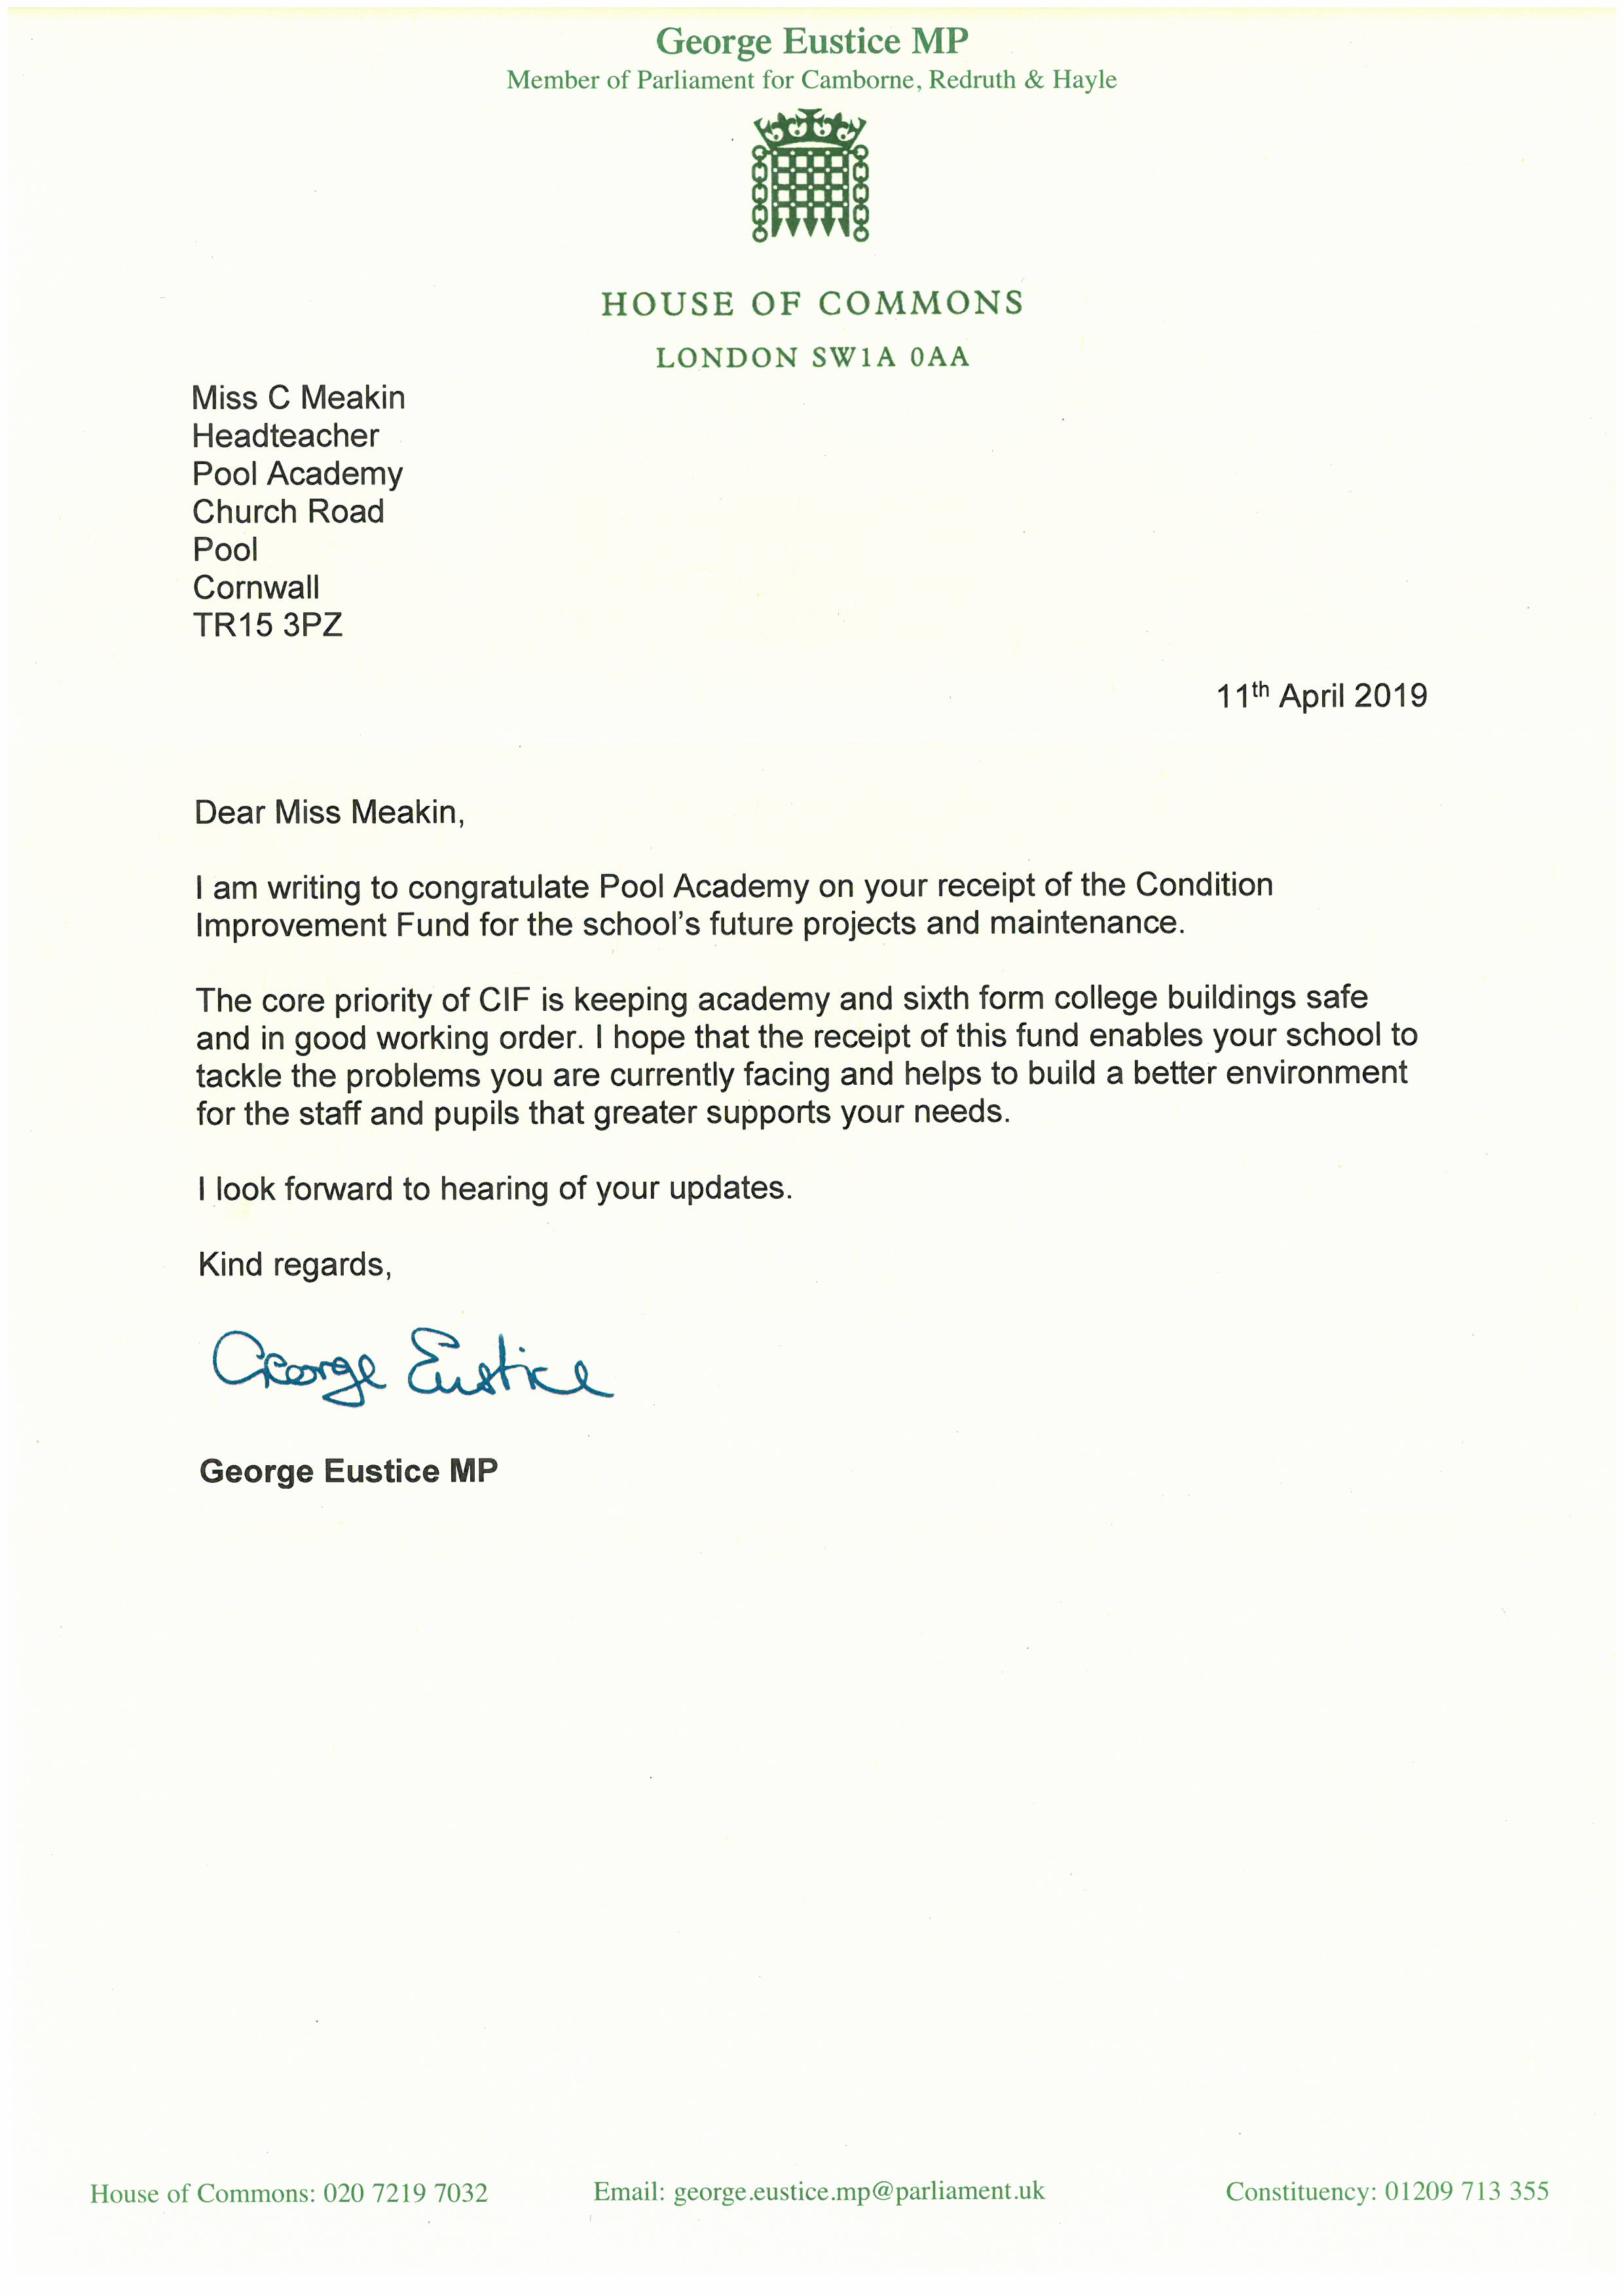 The MP's letter